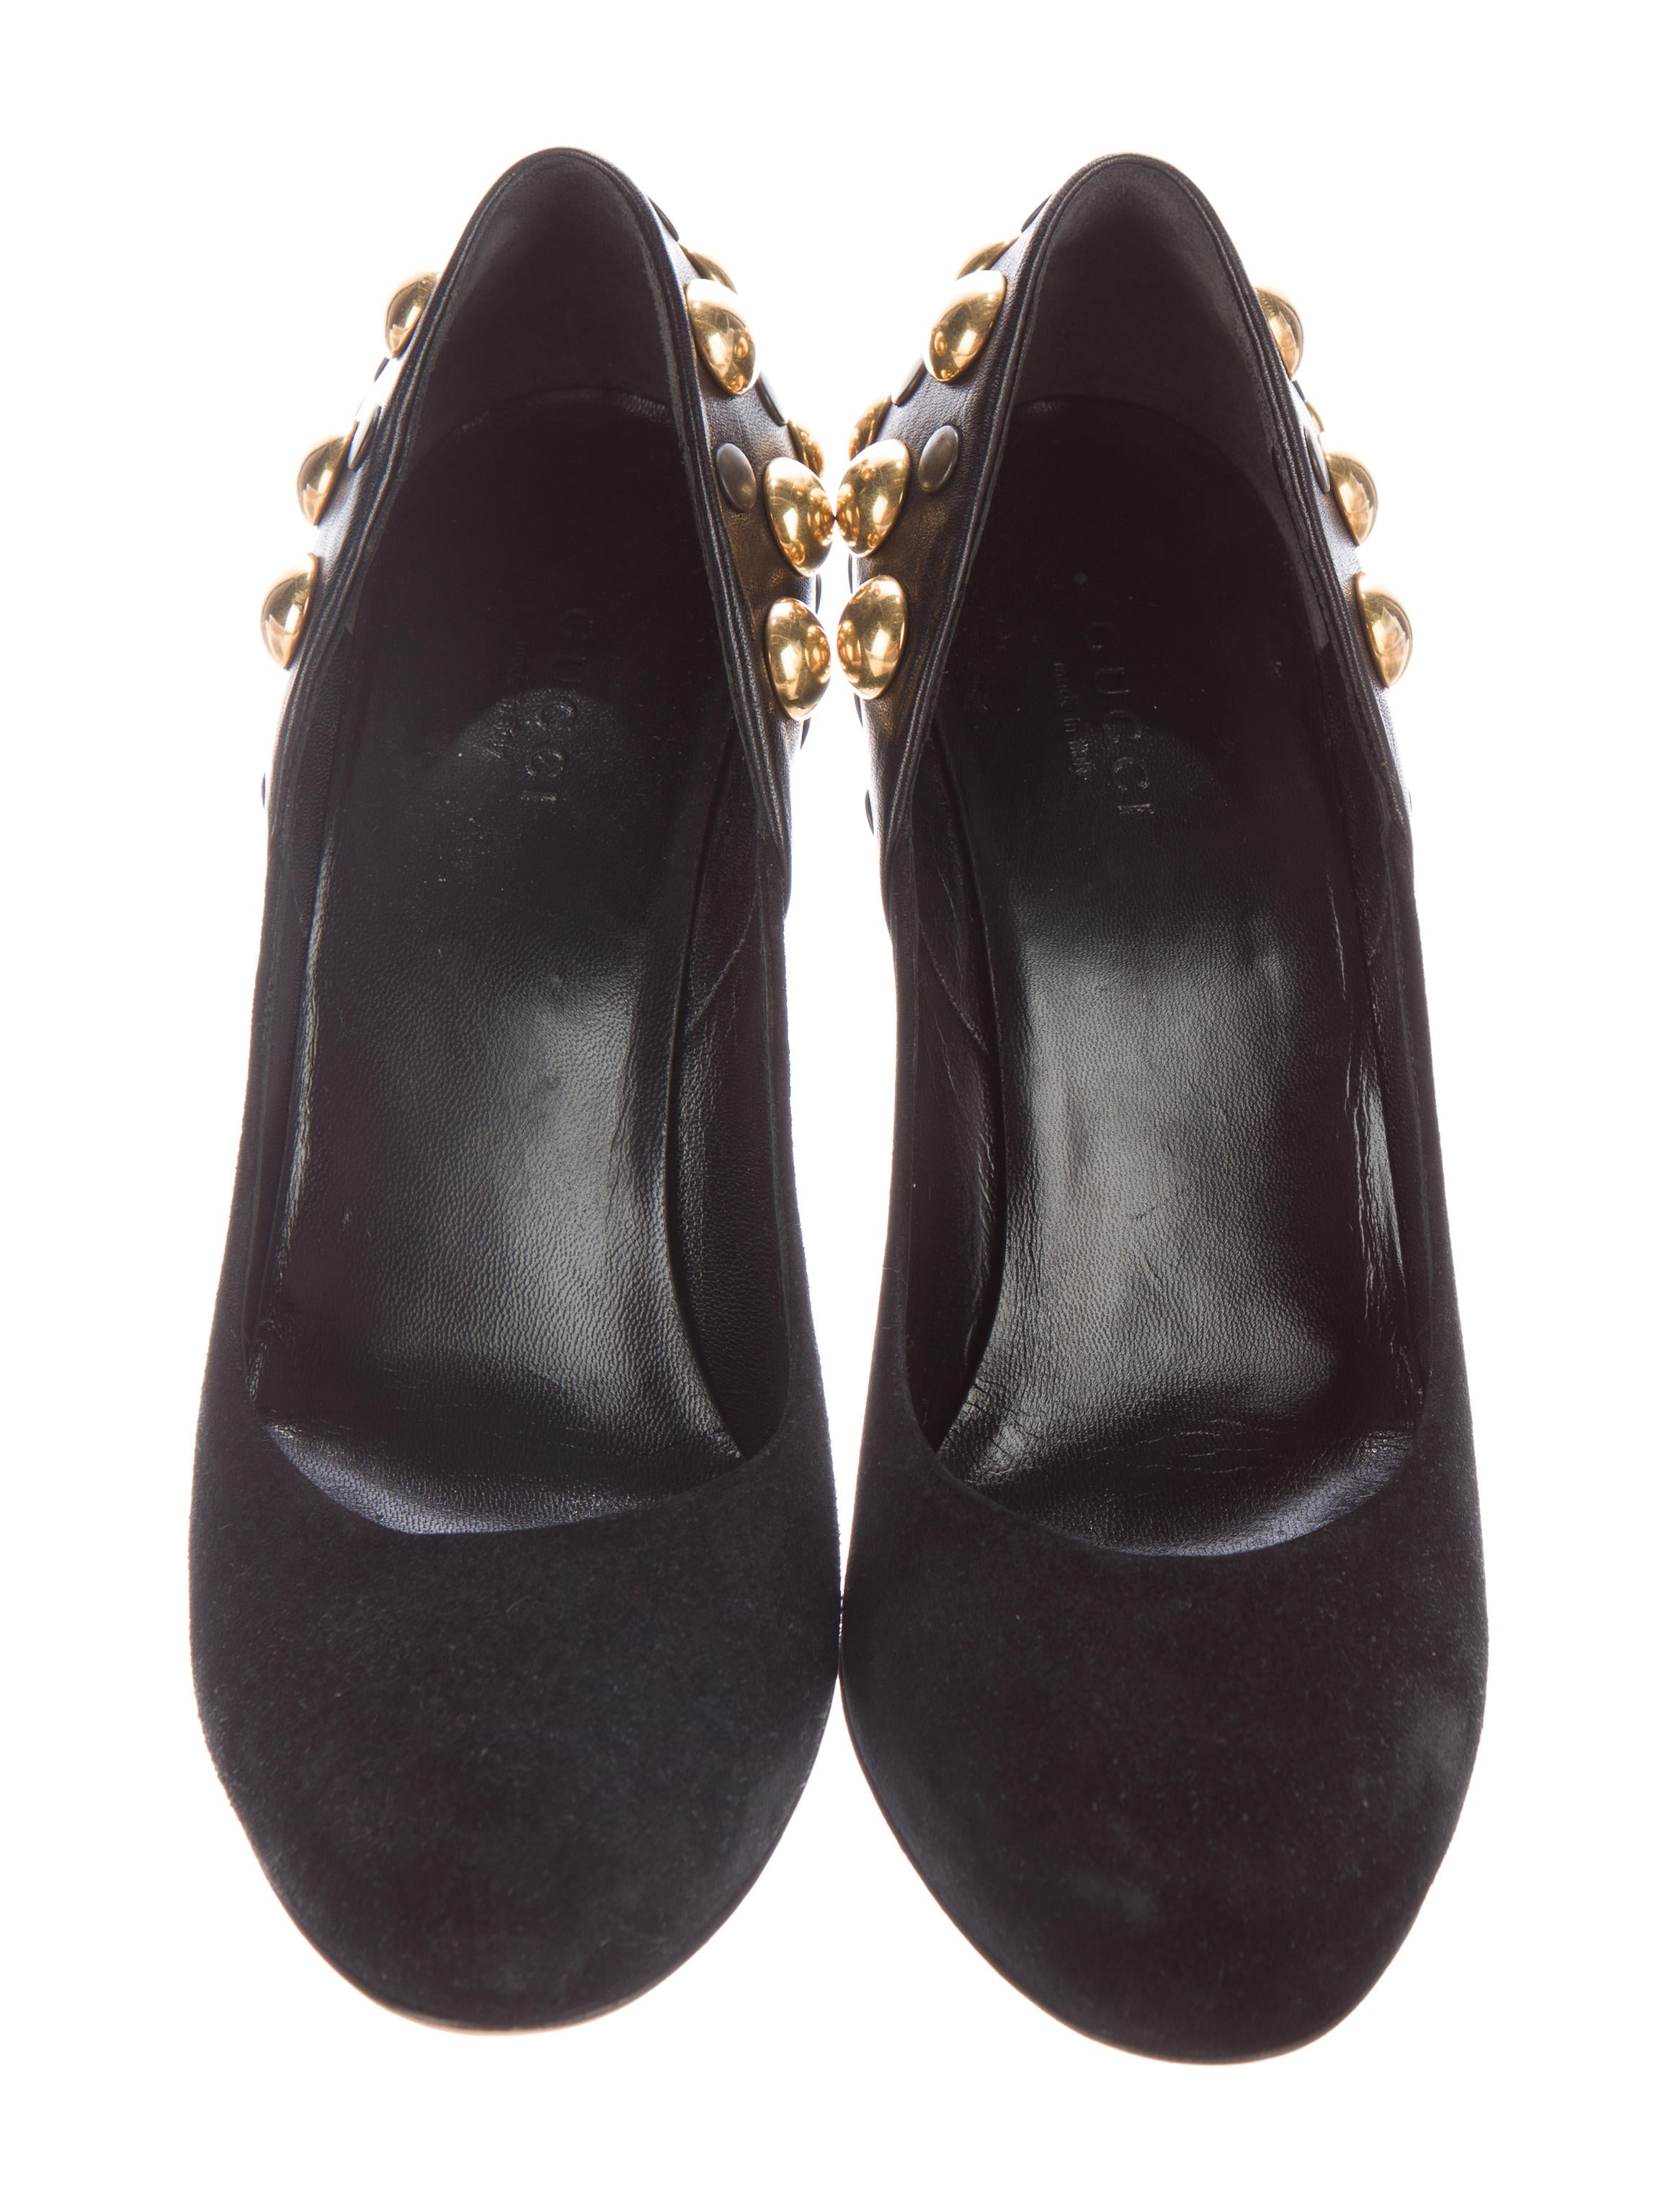 gucci studded suede pumps shoes guc138001 the realreal